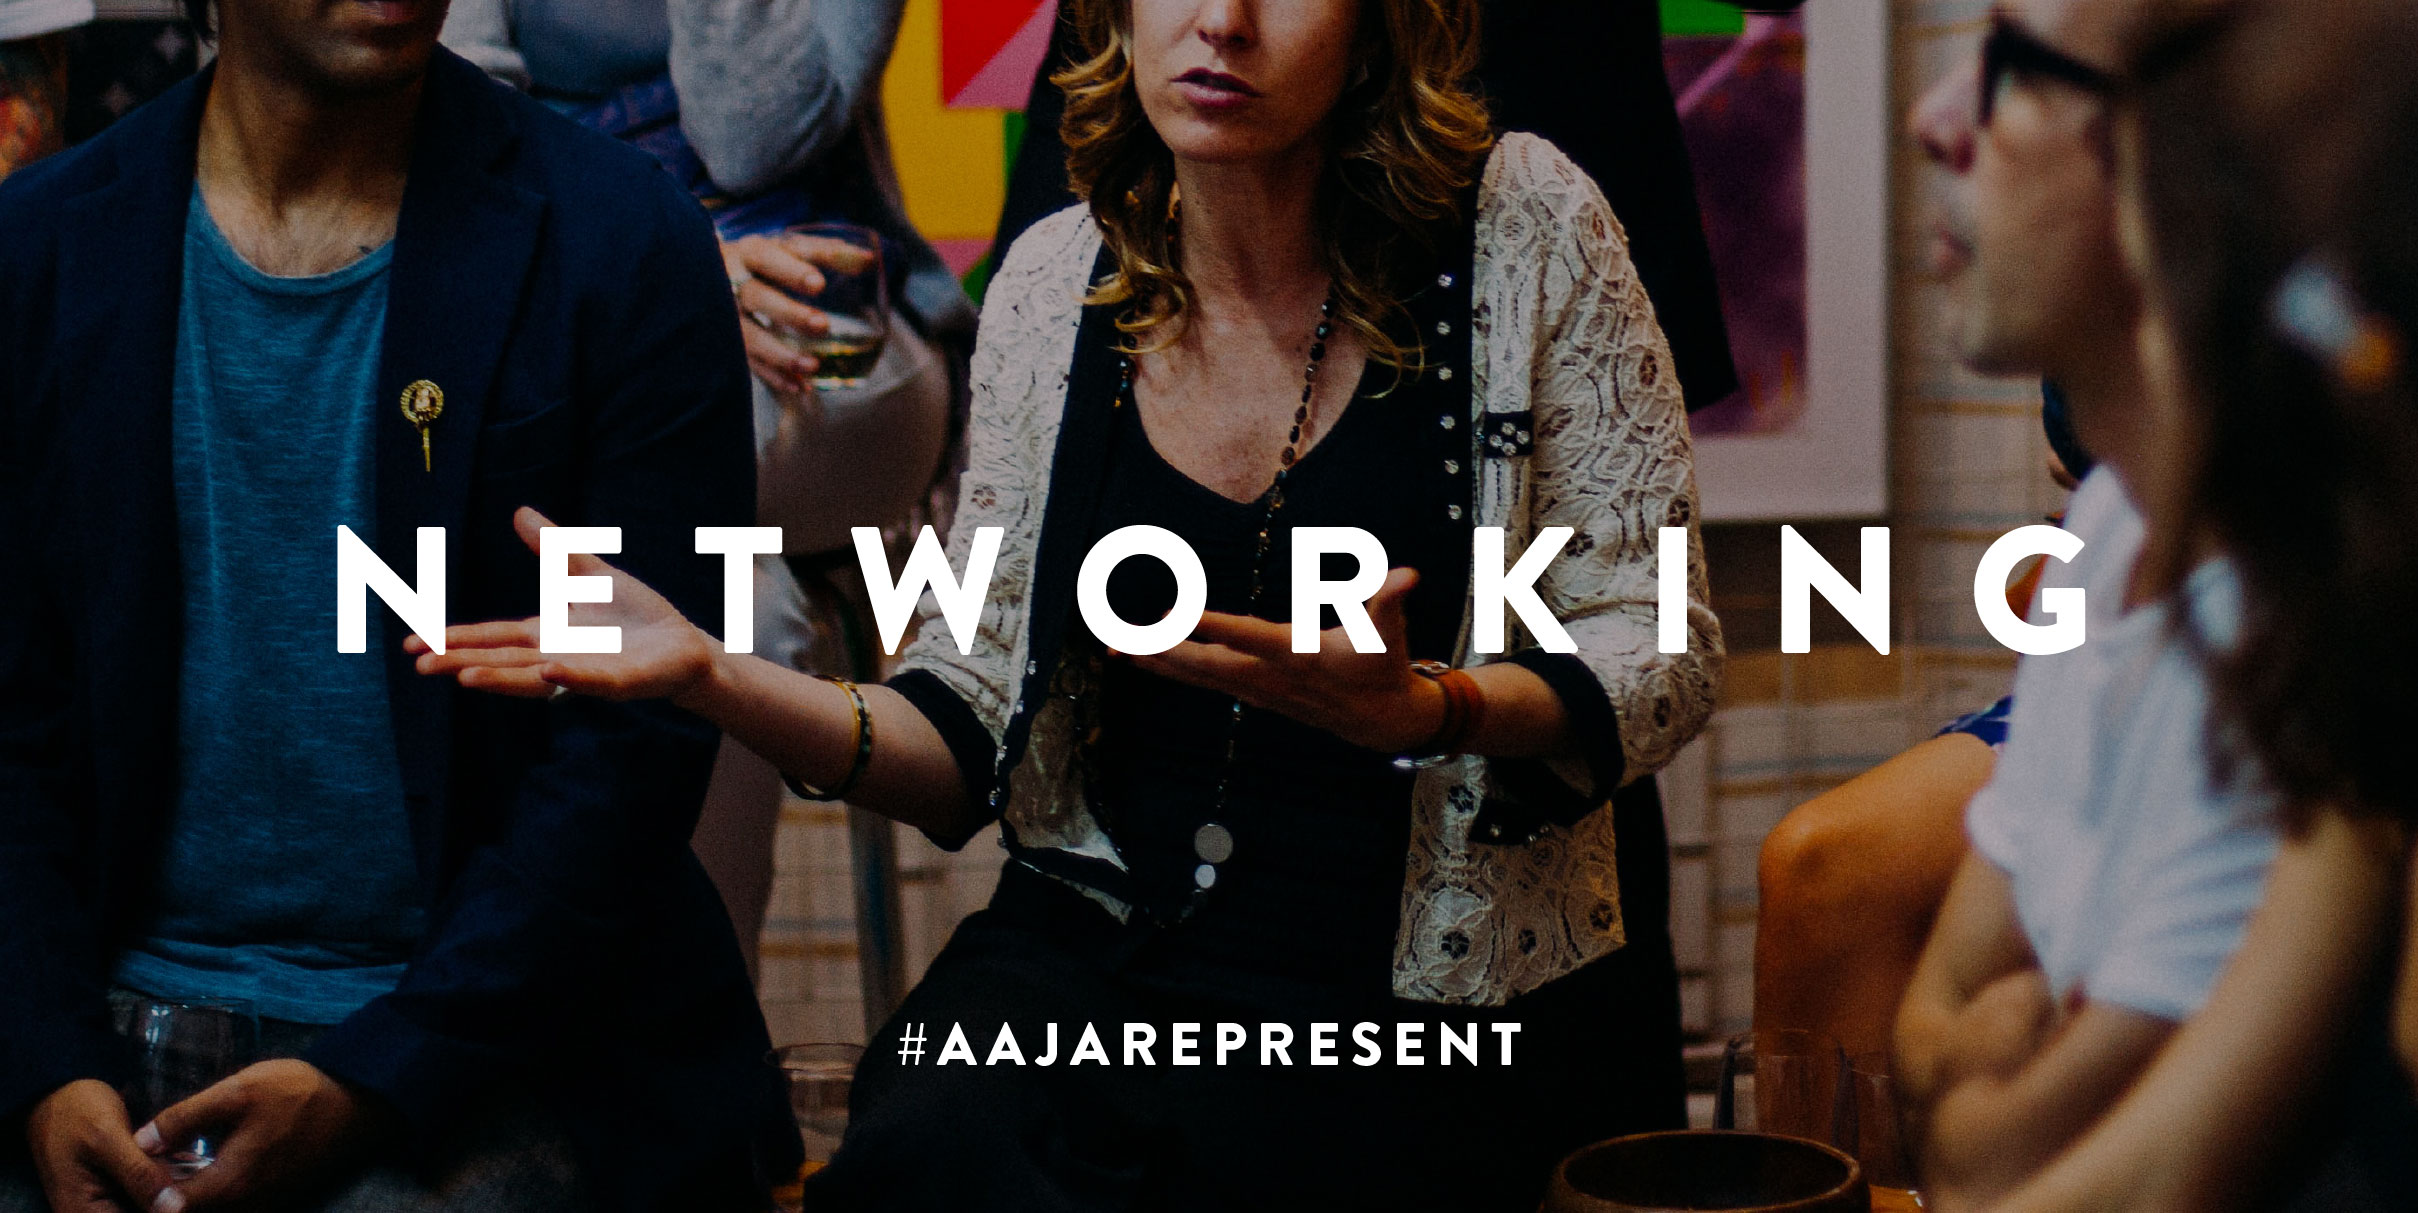 AAJARepresent: Network with Media and Entertainment Professionals